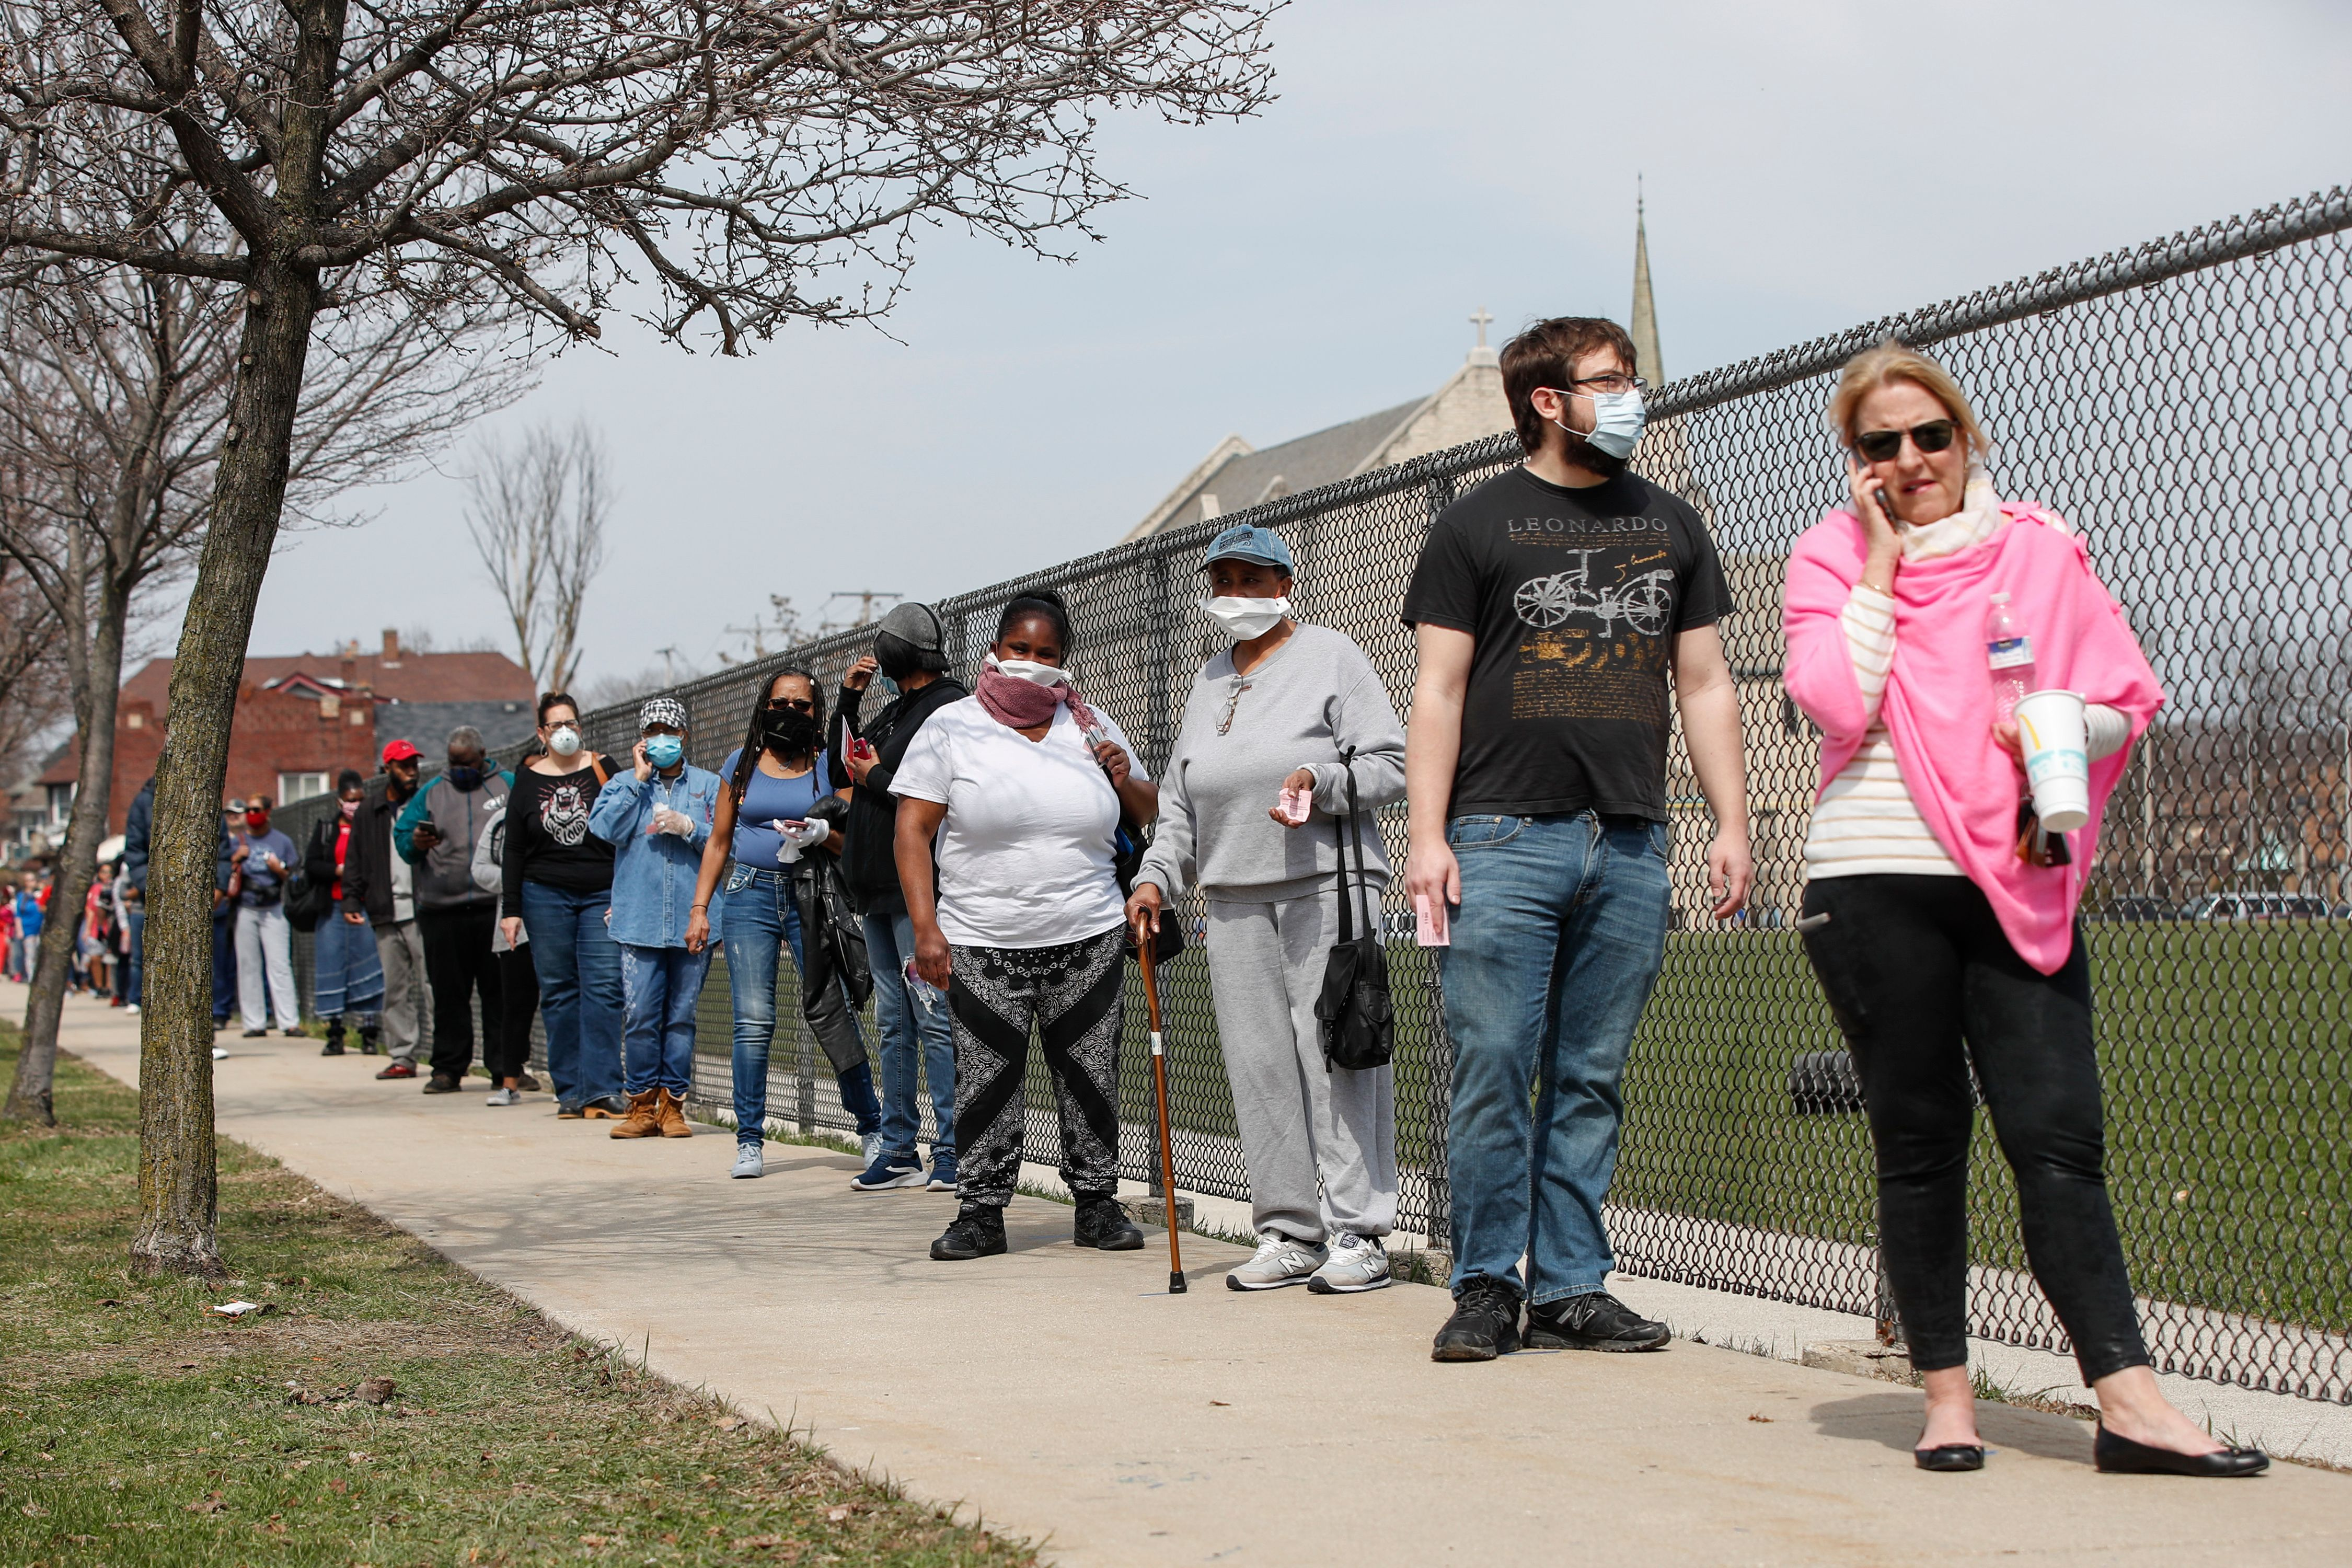 Residents wait in long line to vote in a presidential primary election outside the Riverside High School in Milwaukee, Wisconsin, on April 7, 2020. (KAMIL KRZACZYNSKI/AFP via Getty Images)